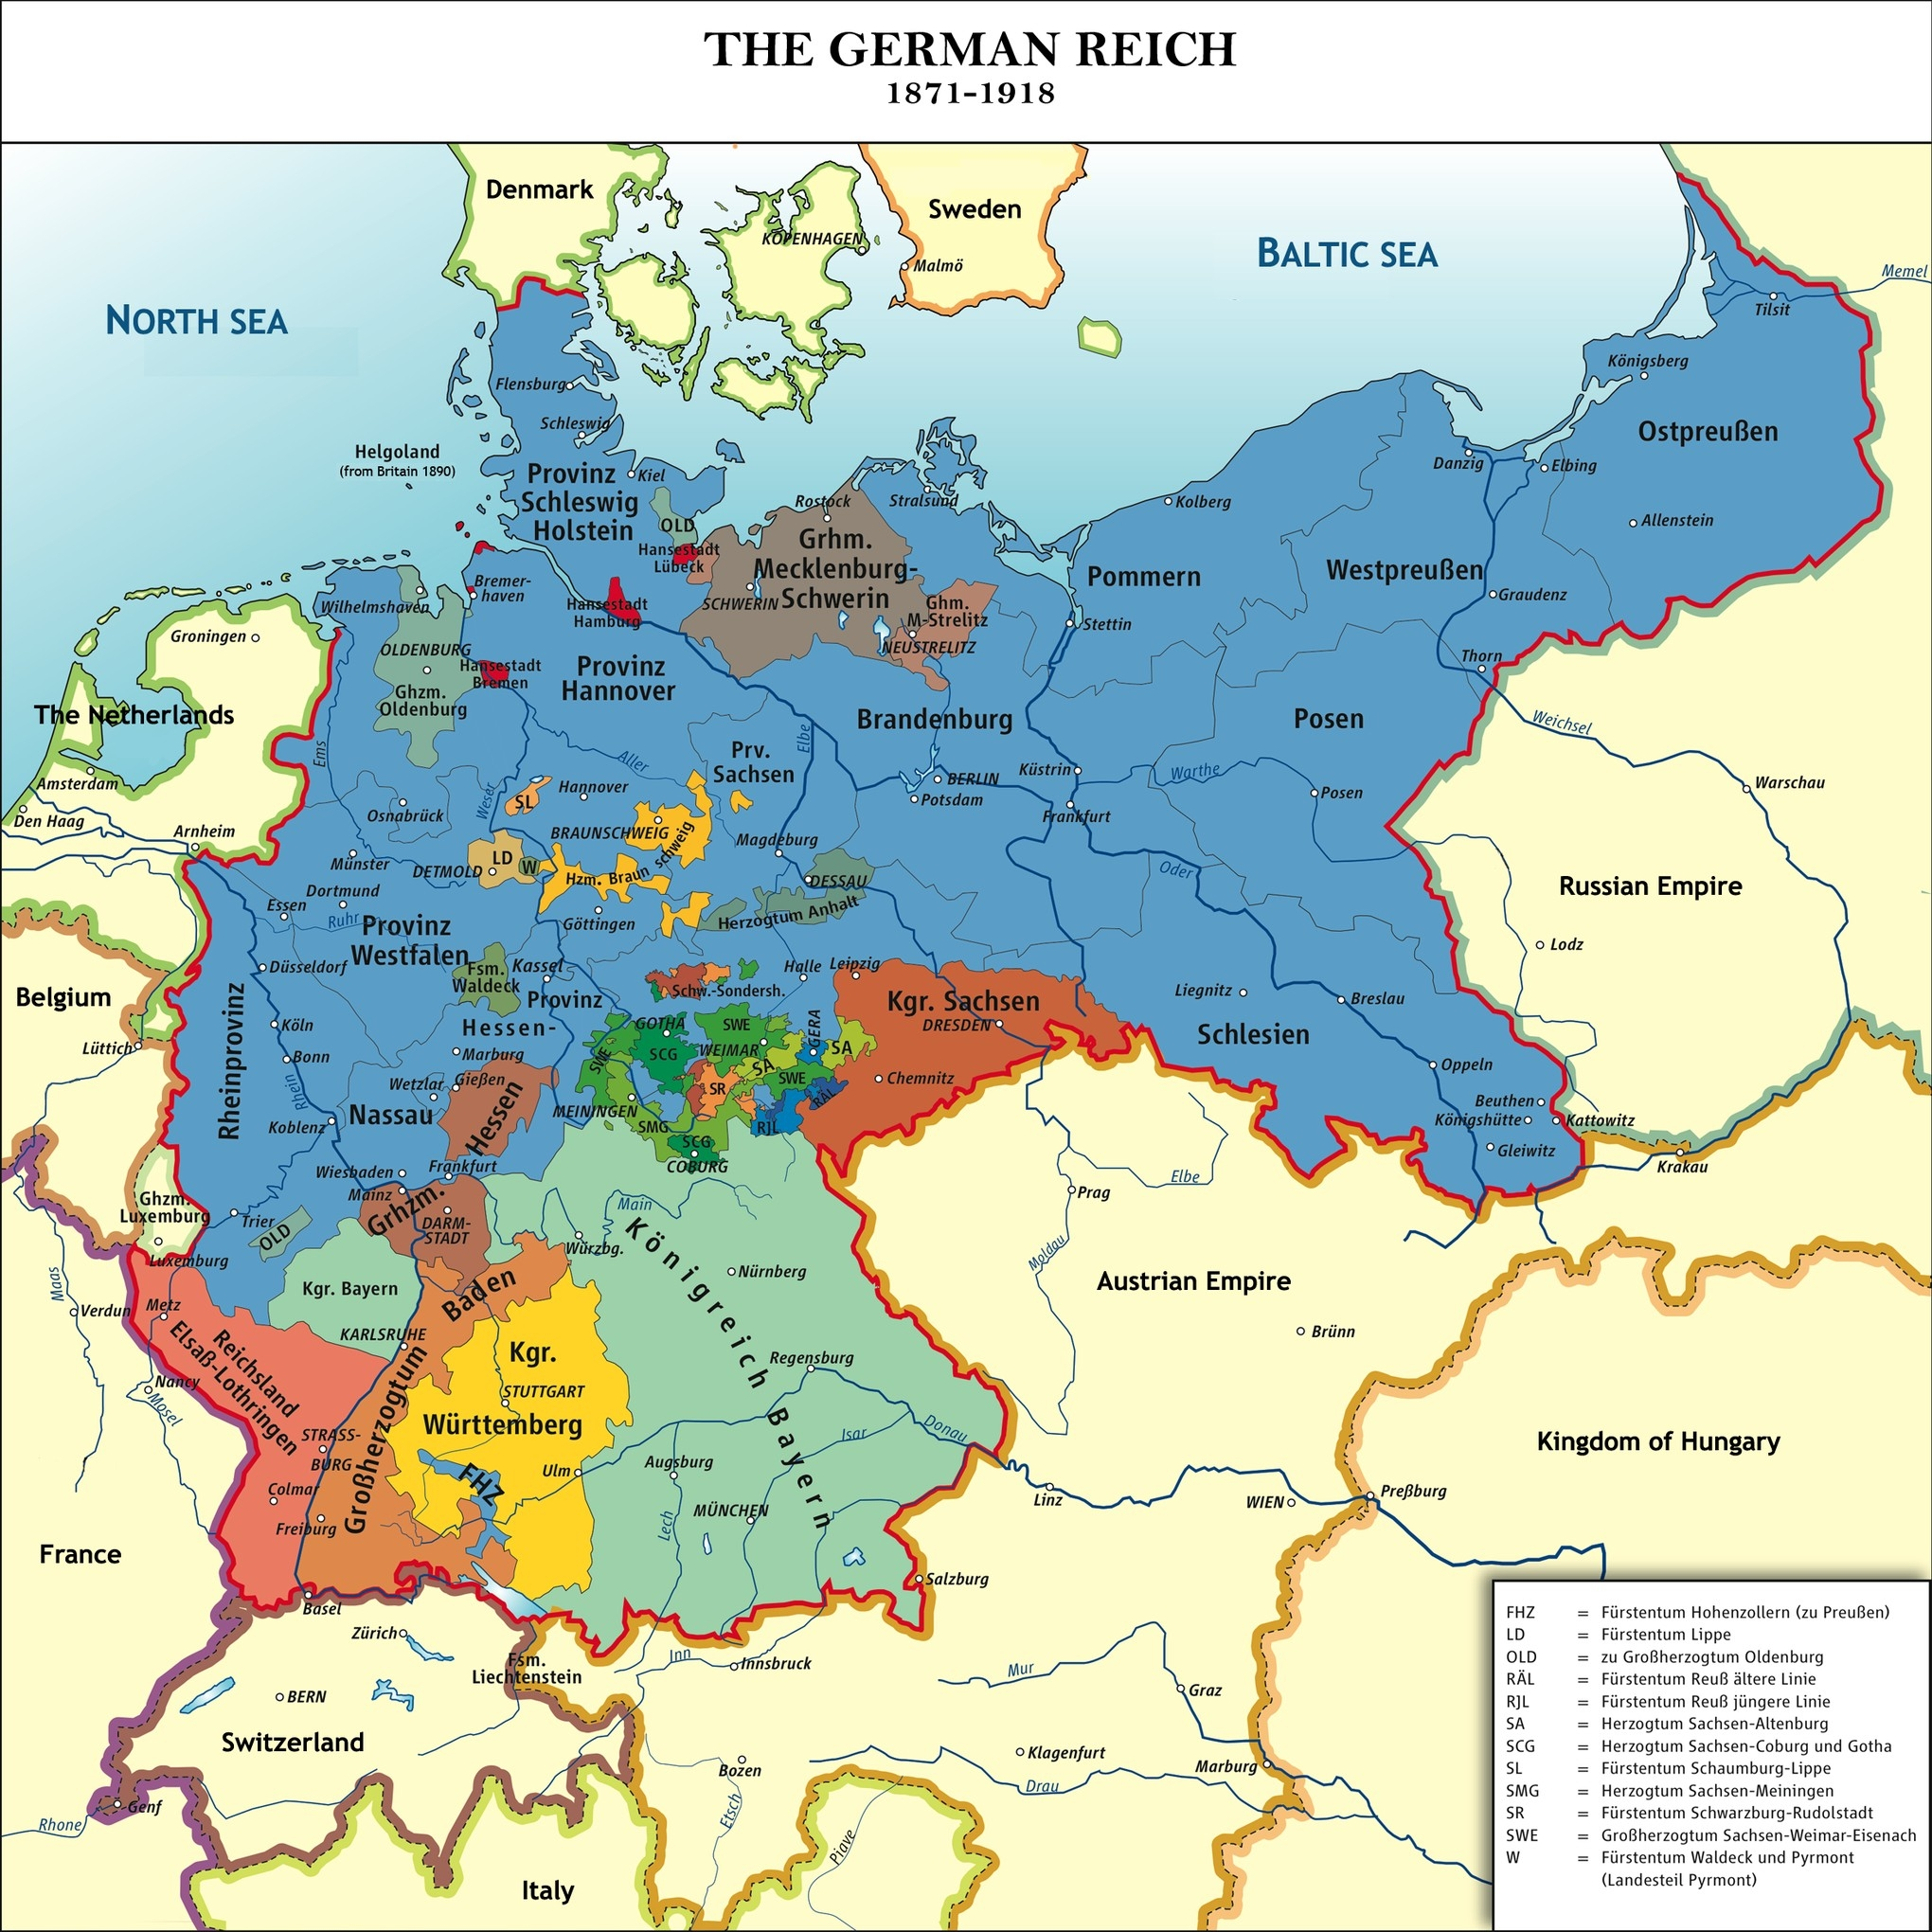 Maps Of Germany Throughout History - World Map with regard to Maps Of Germany Throughout History